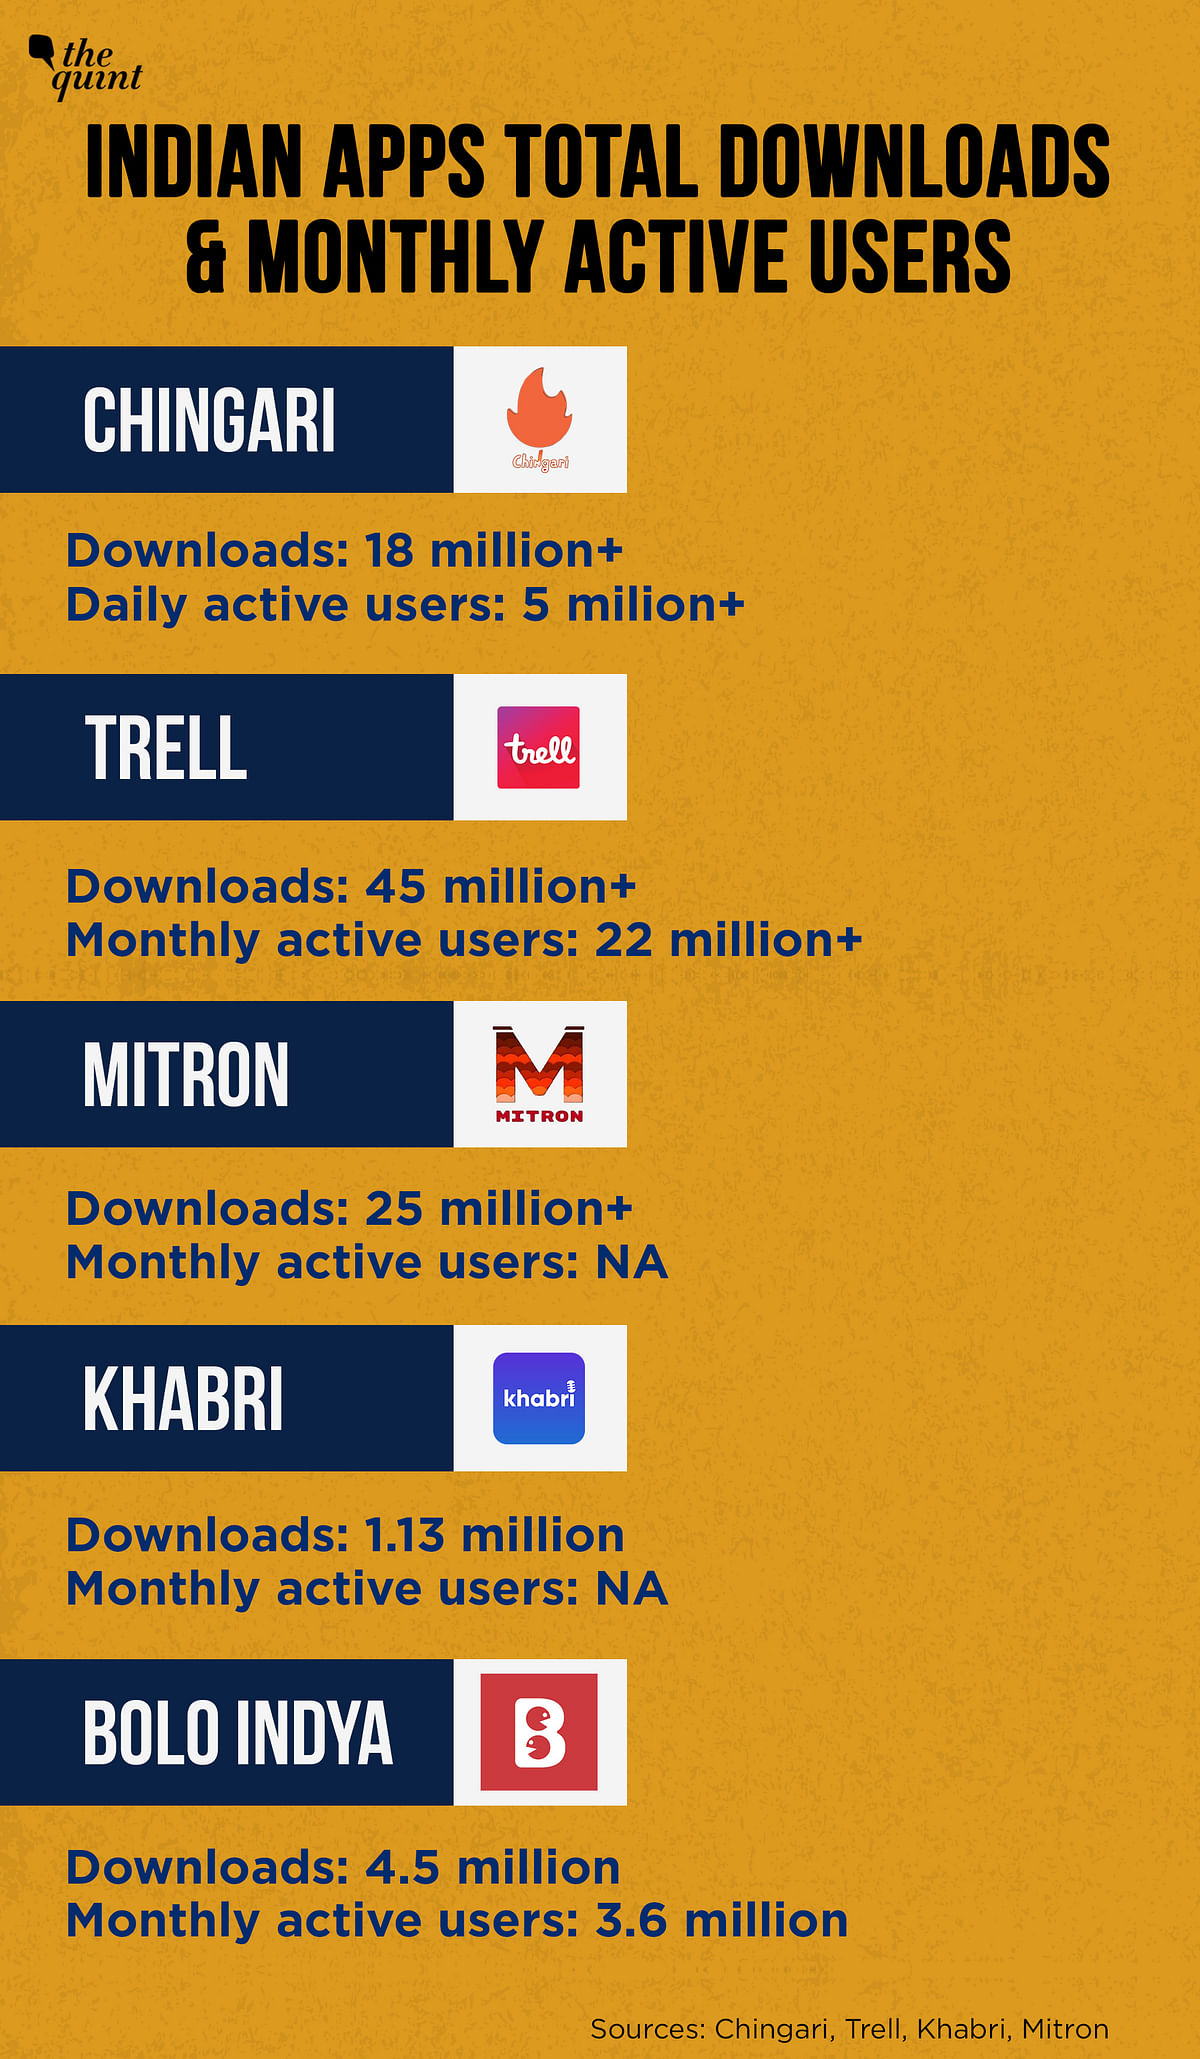 A look at some of the Indian apps and their engagement in India.